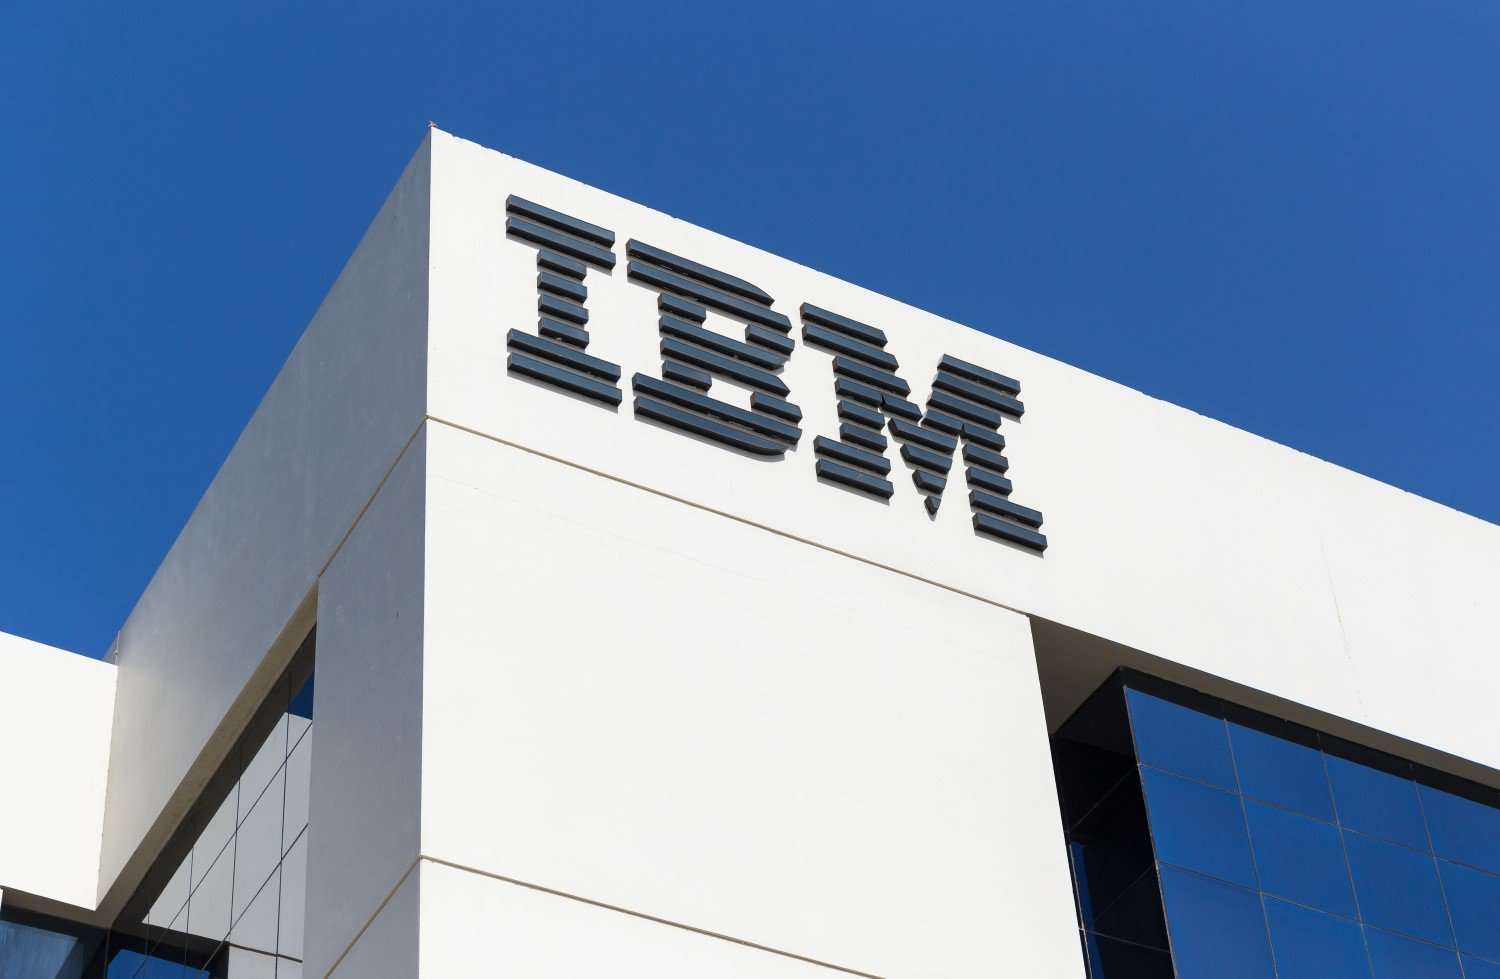 Ibm Debuts Blockchain World Wire Payments System Powered By Wiring Instructions For Citibank Stellar Main Bloq